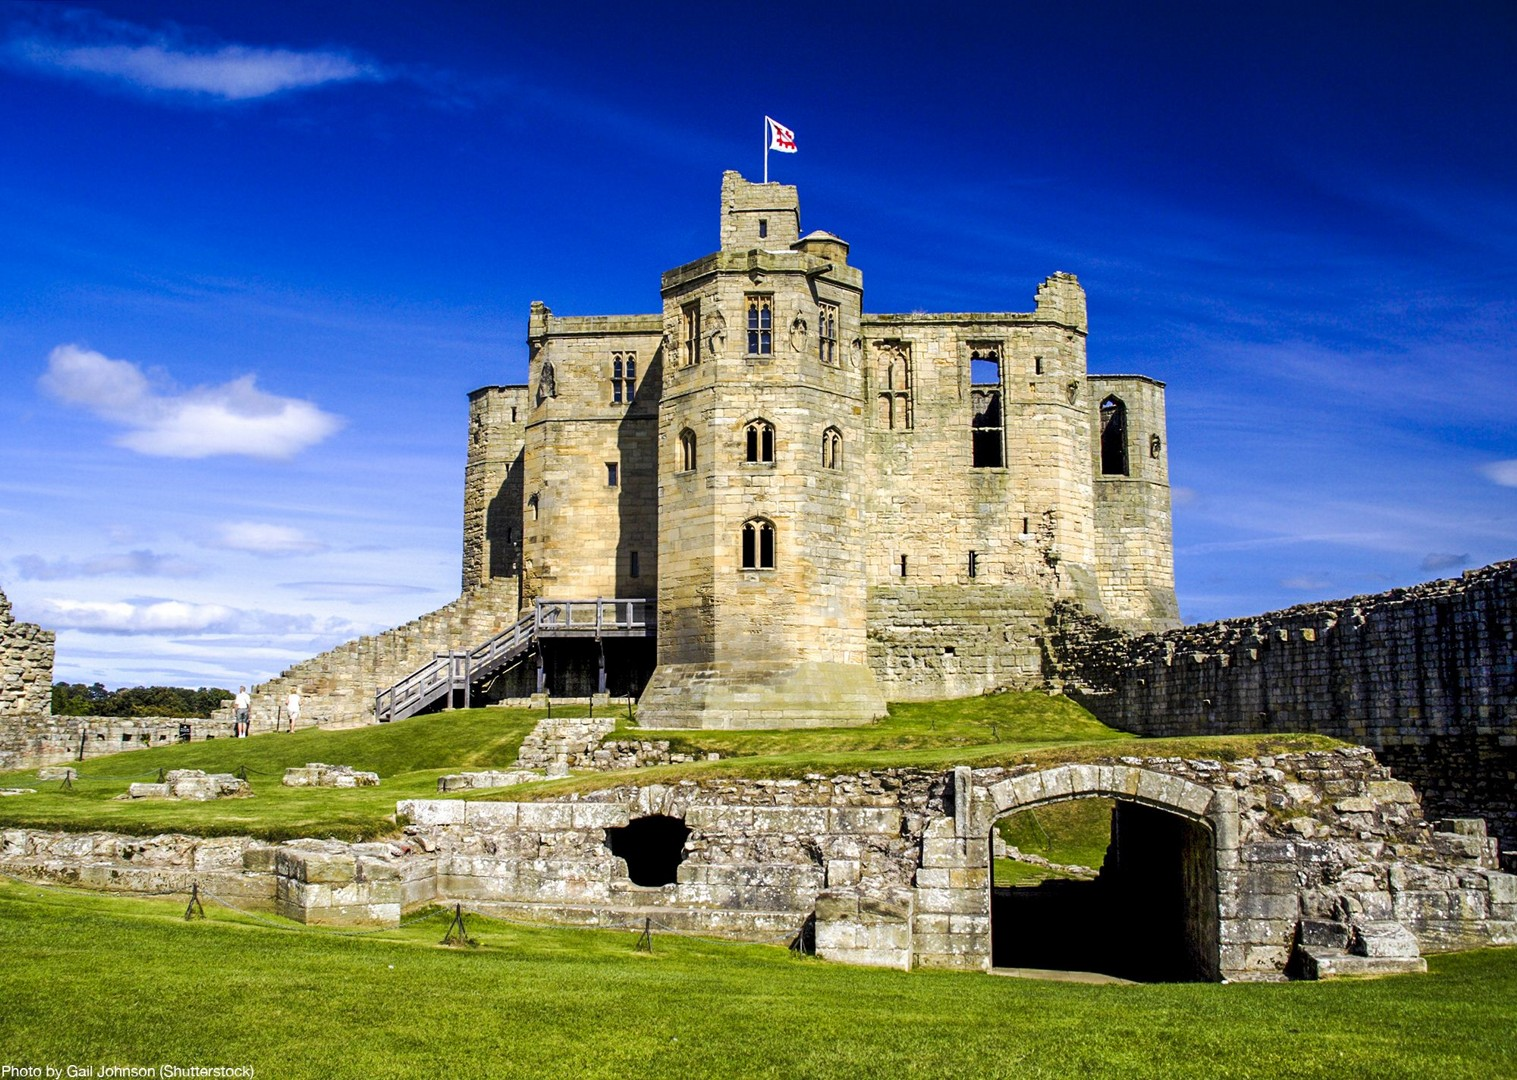 uk-traditional-castles-bamburgh-dunstanburgh-newton-by-the-sea-cycling-holiday.jpg - UK - Northumberland Coast - 2 Days - Self-Guided Leisure Cycling Holiday - Leisure Cycling